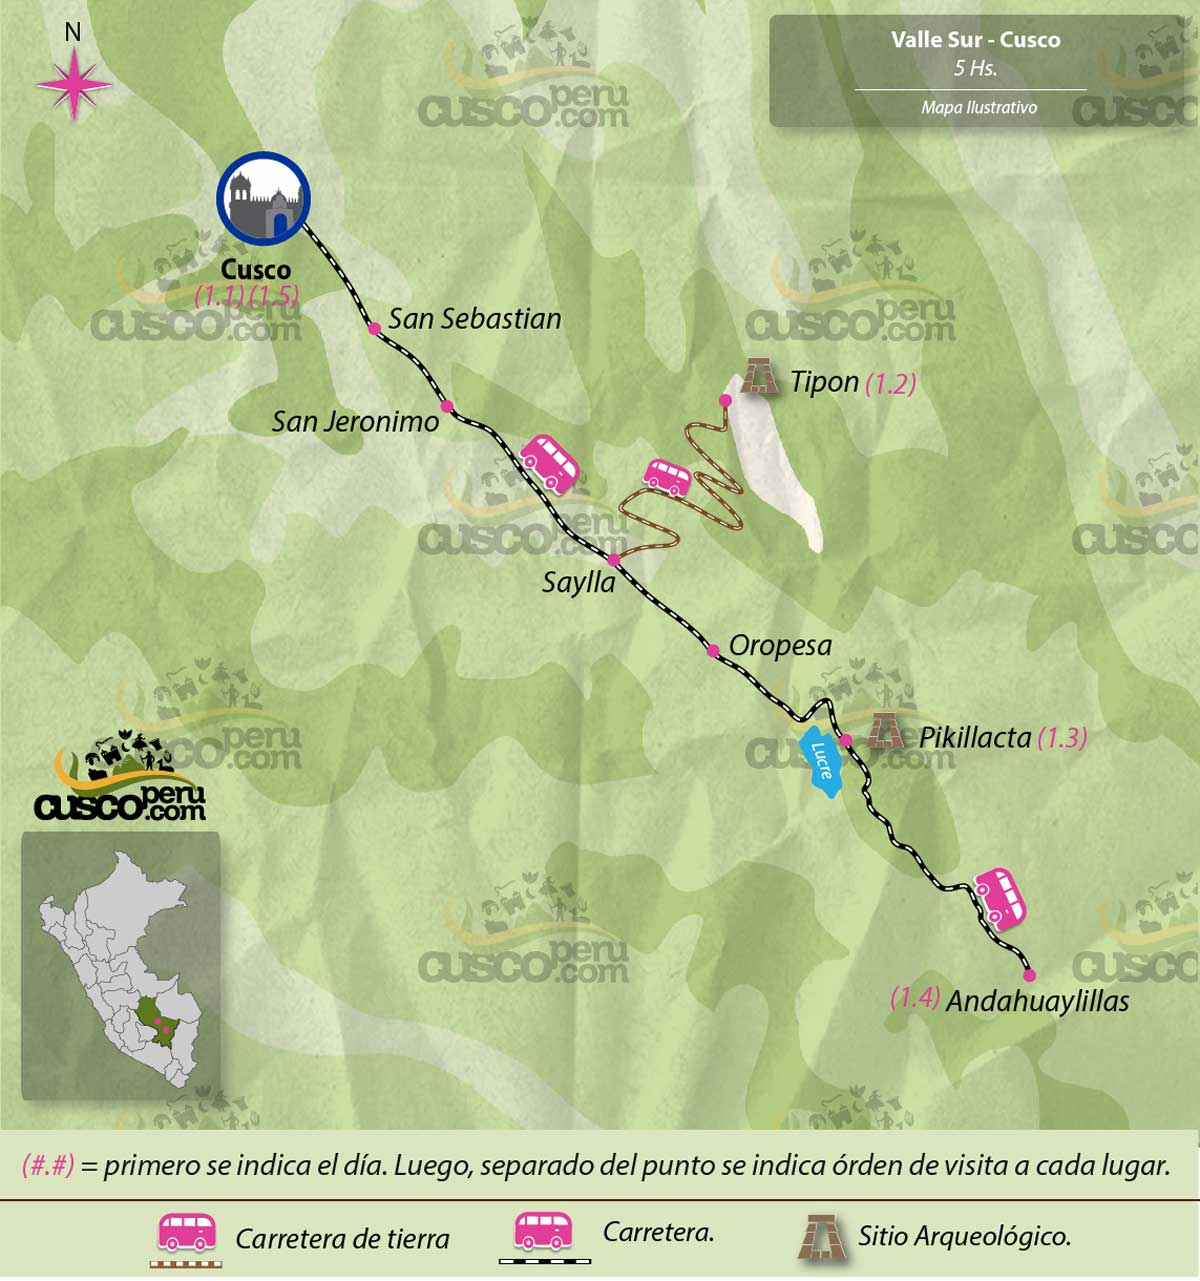 Mapa Tour Valle Sur del Cusco 5 Horas